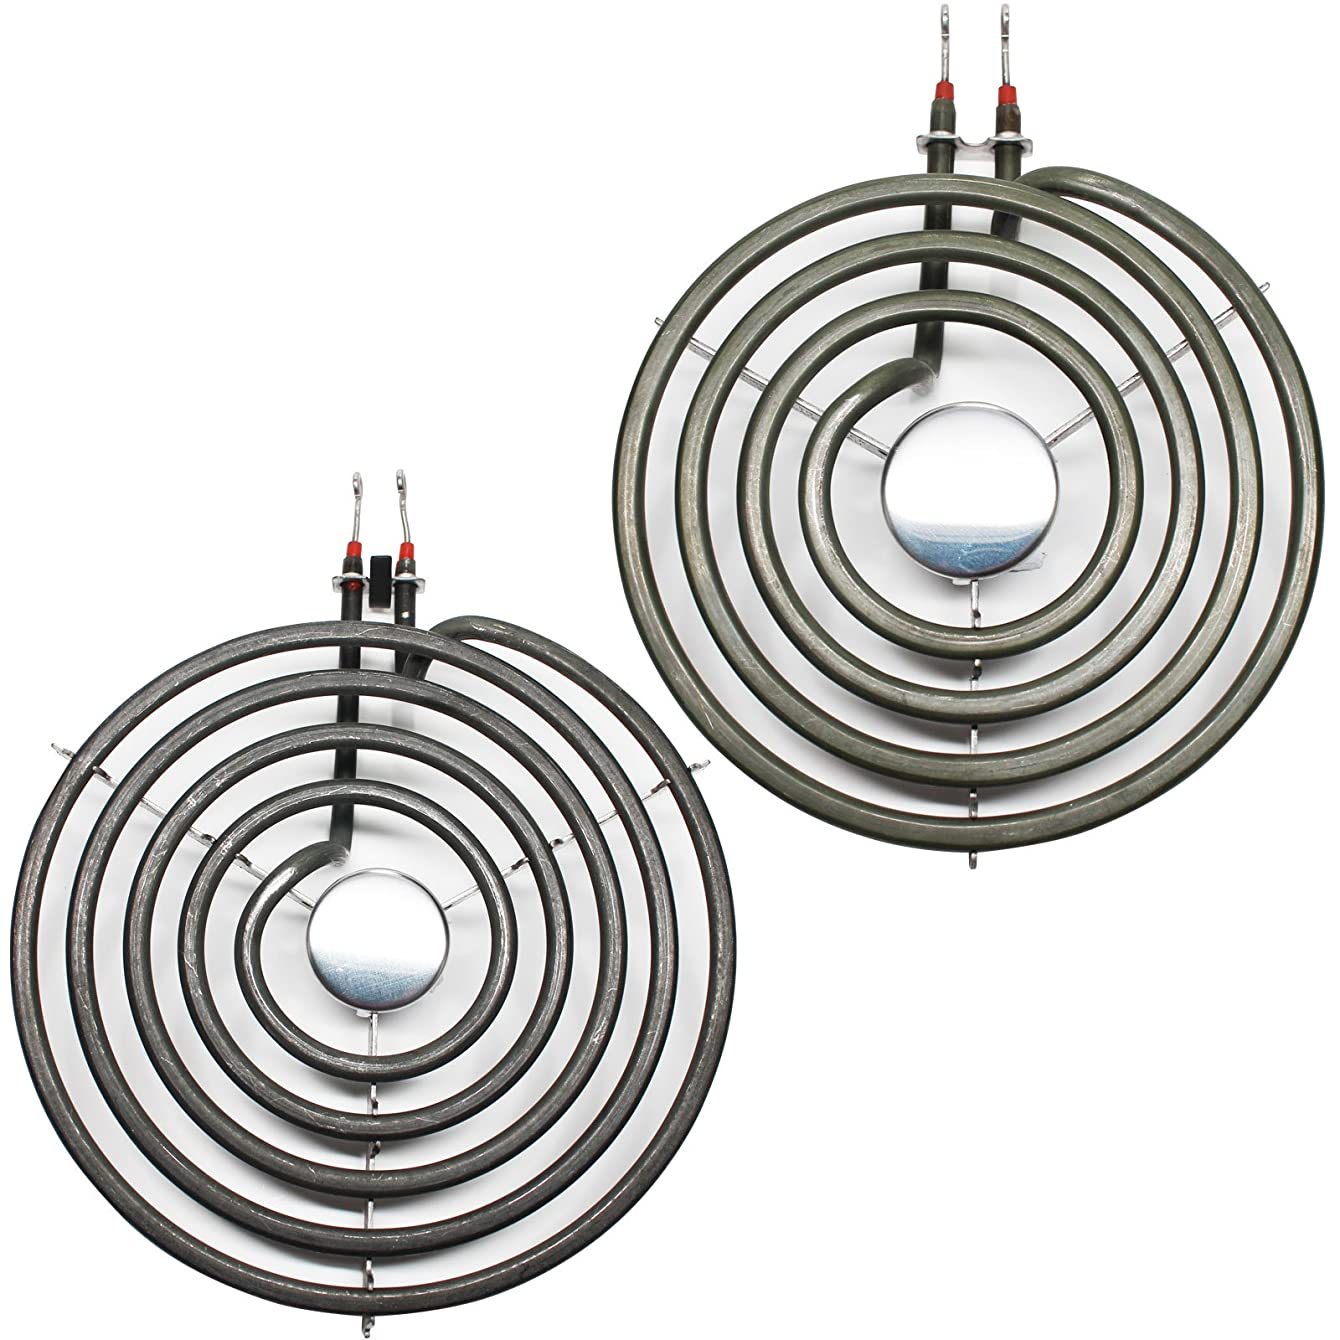 Replacement Whirlpool RF114PXSQ2 8 inch 5 Turns & 6 inch 4 Turns Surface Burner Elements - Compatible Whirlpool 9761345 & 660532 Heating Element for Range, Stove & Cooktop